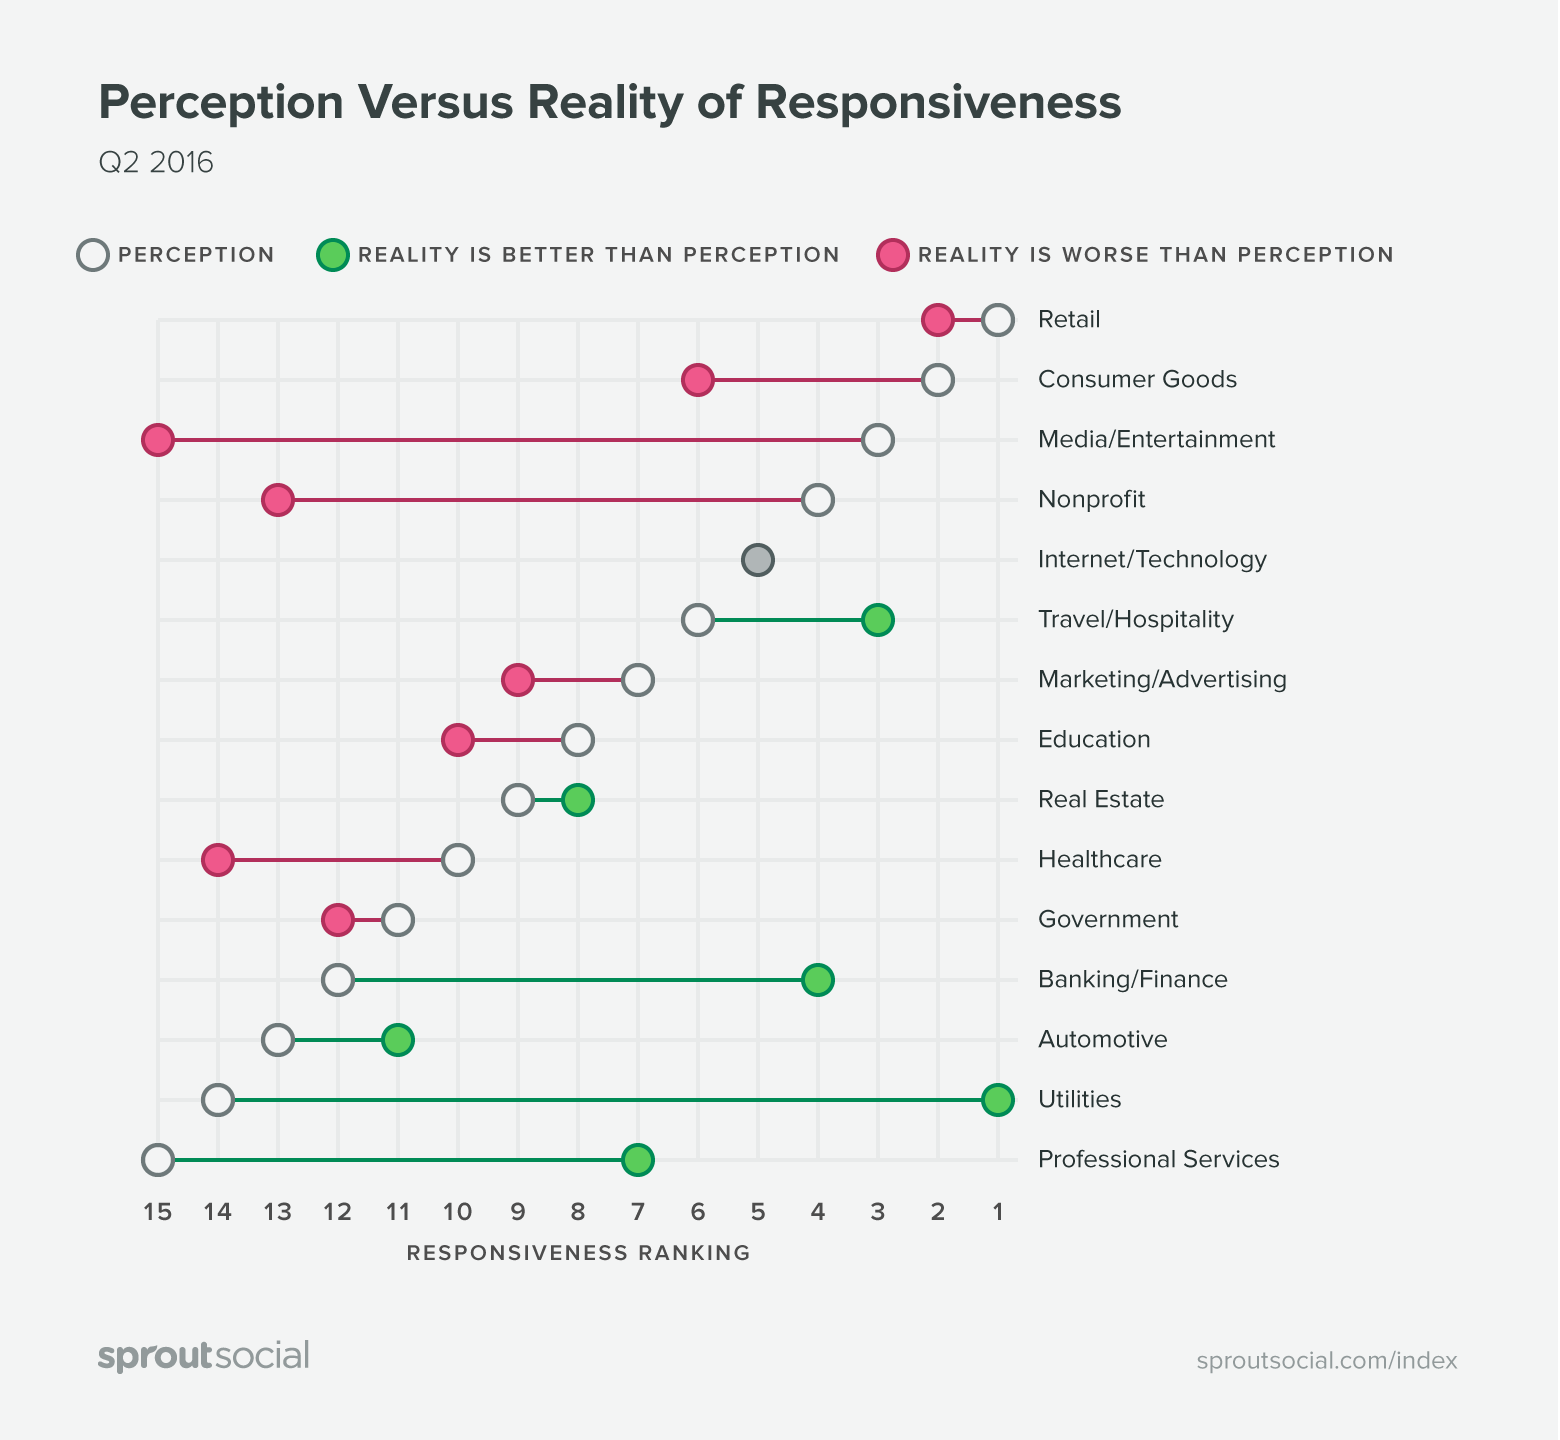 The perception of social support responsiveness vs reality